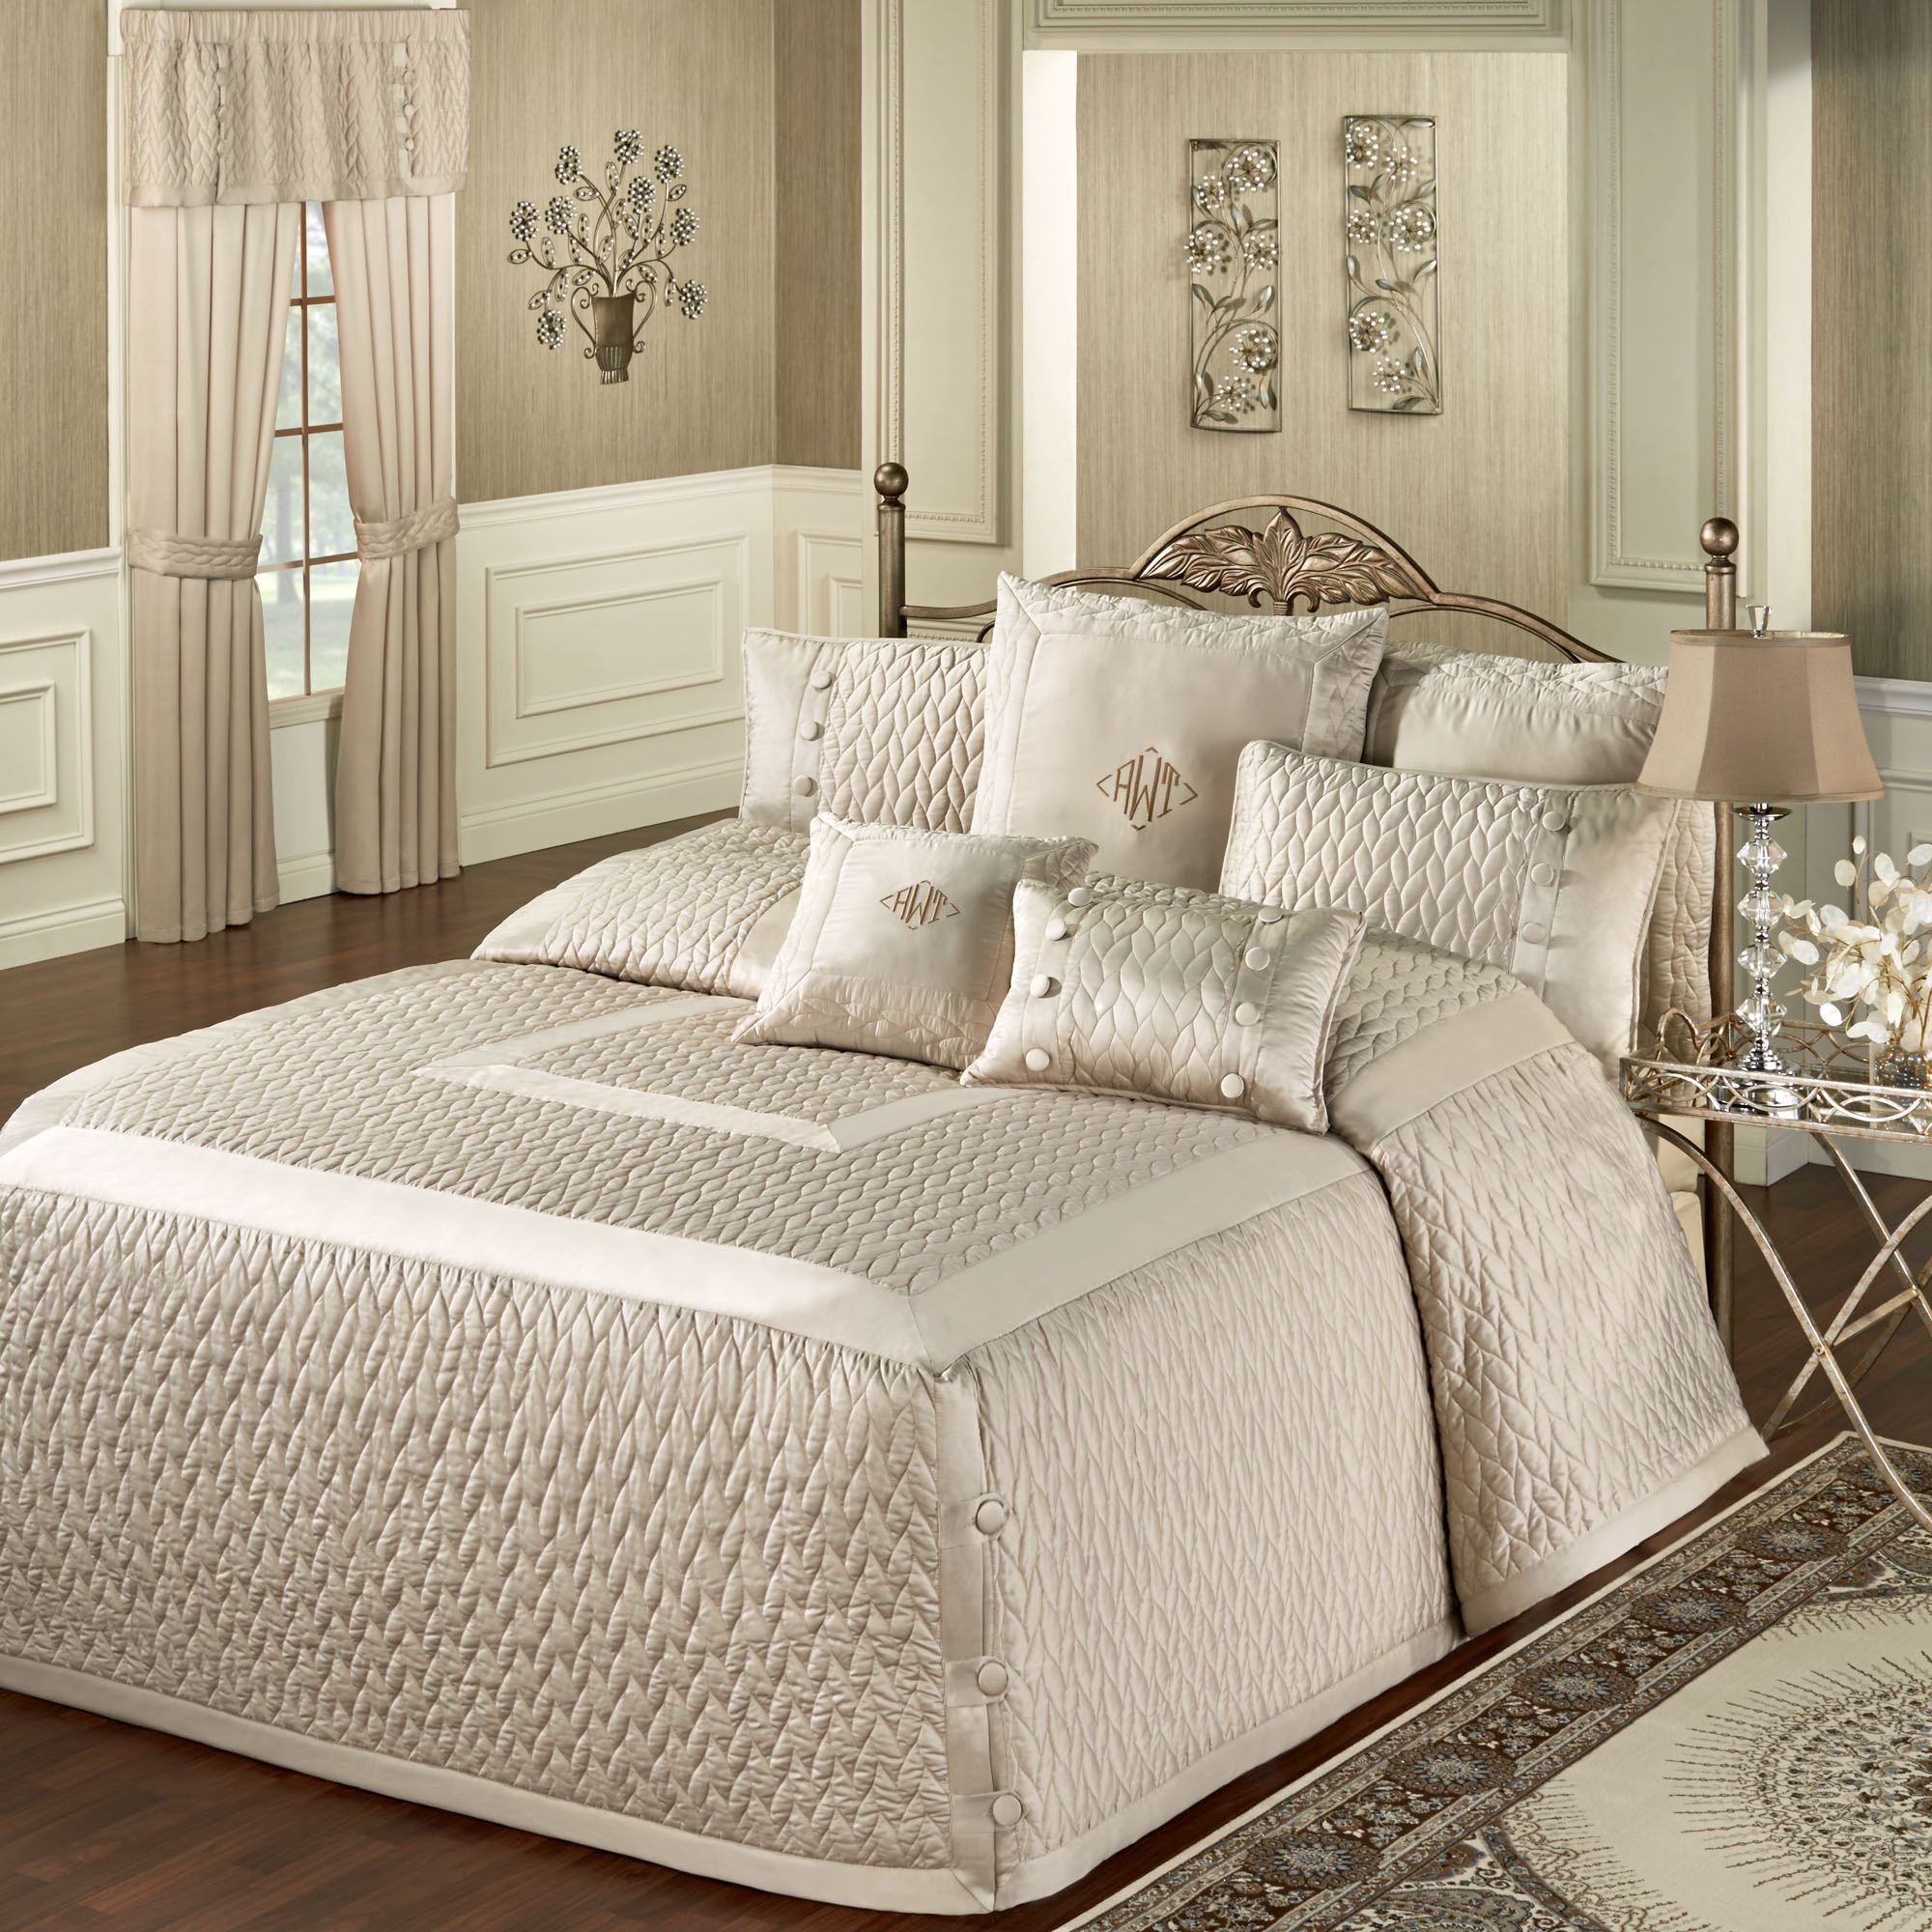 coverlet home set diamond free overstock buckingham quilt piece today product vcny bedding on bedspread bath sale quilted shipping